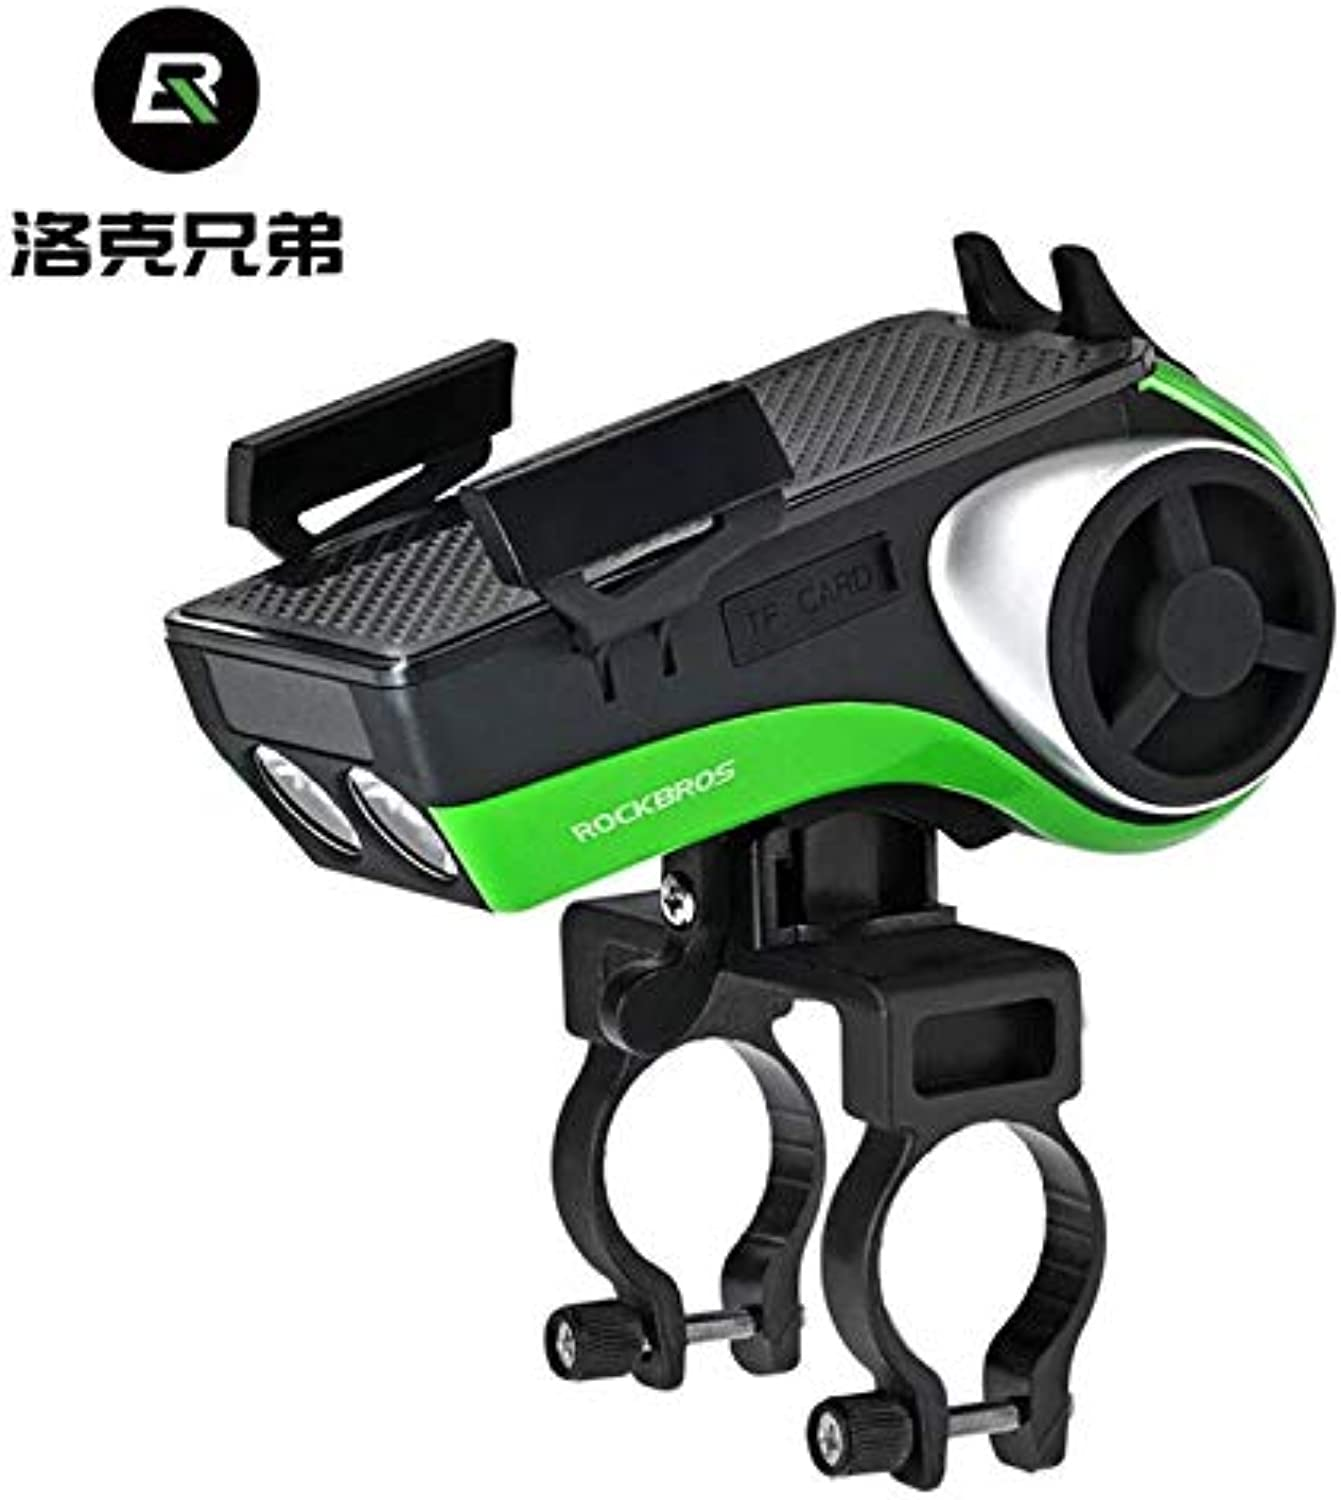 Mountain Road Bike Stereo subwoofer Stereo blueeetooth Phone Holder Riding Lights Charging Treasure Trumpet